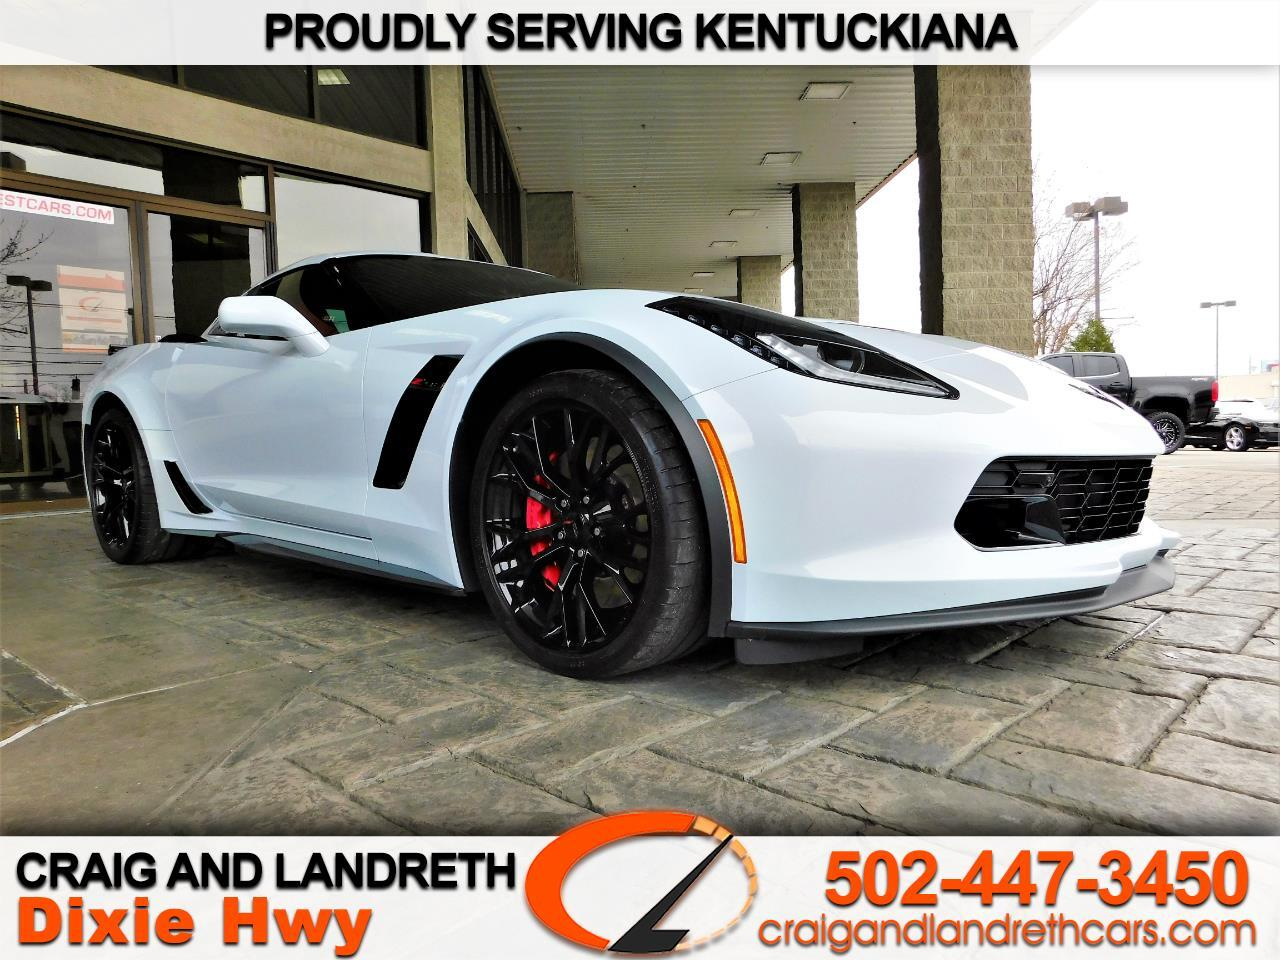 2018 Chevrolet Corvette 2LZ Z06 Coupe